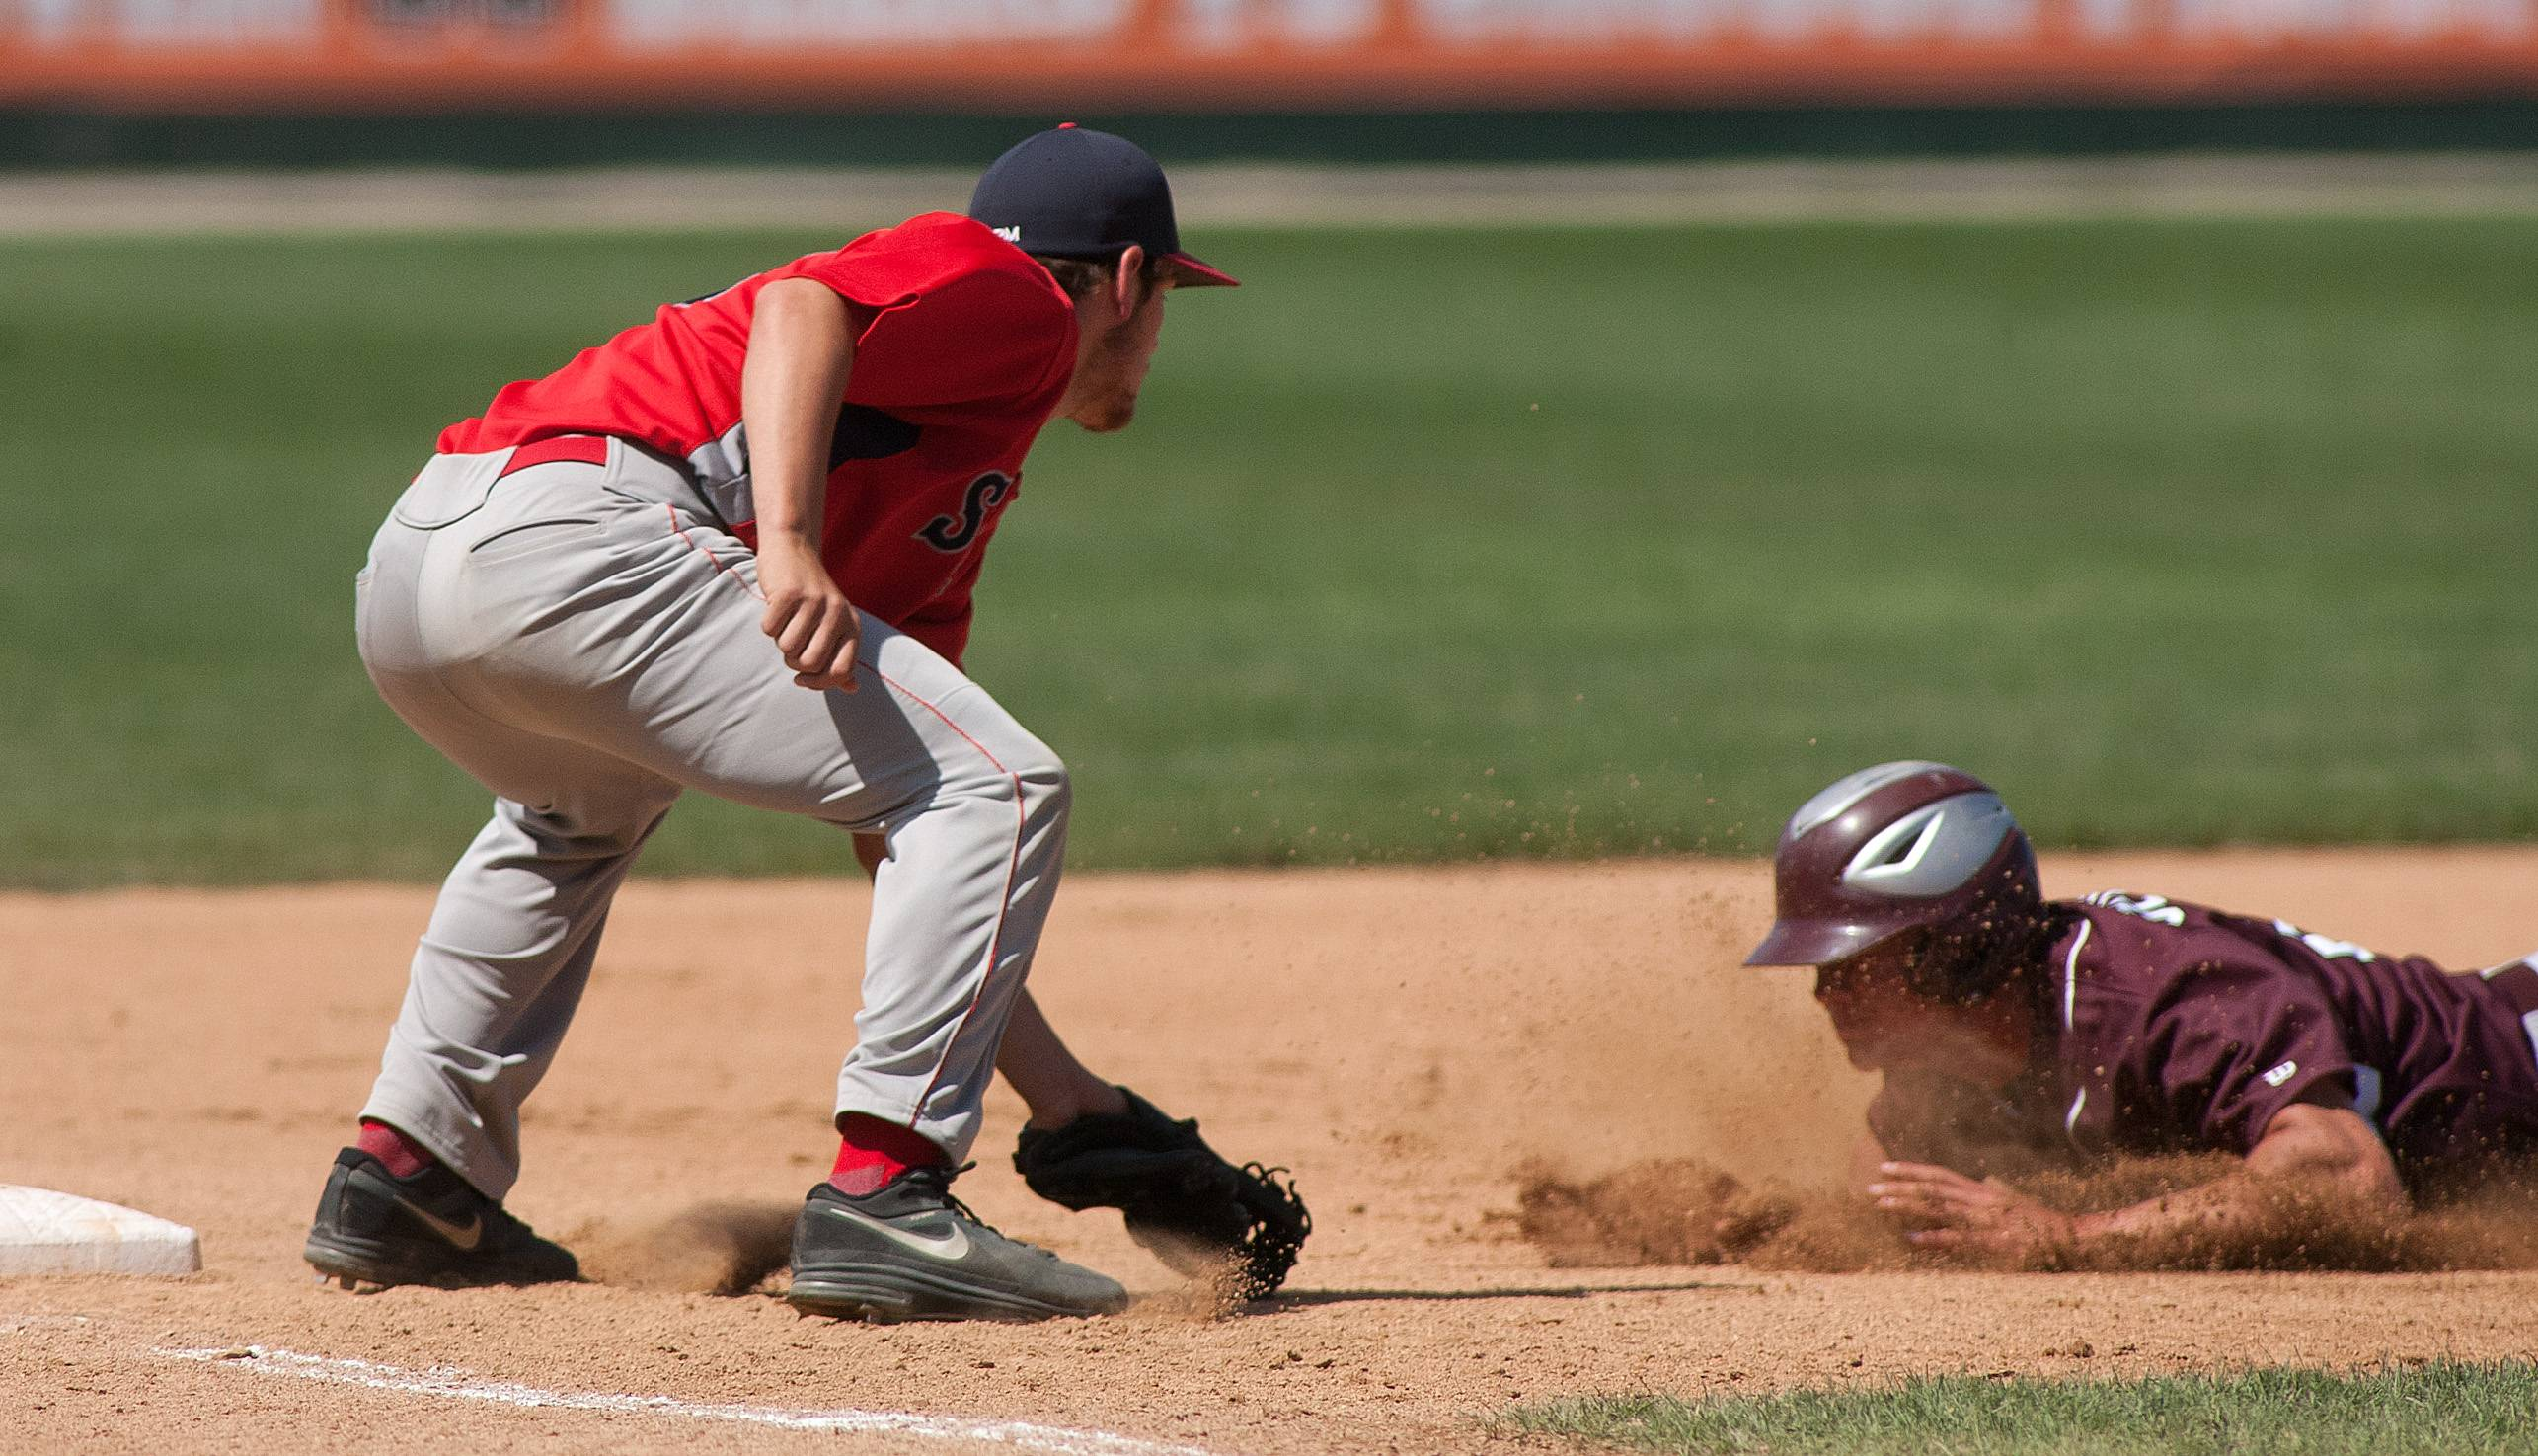 South Elgin third baseman Kyle Hays, left, tags out Prairie Ridge's Carson Getzelman to end the first inning of the Class 4A third-place game at Silver Cross Field in Joliet.